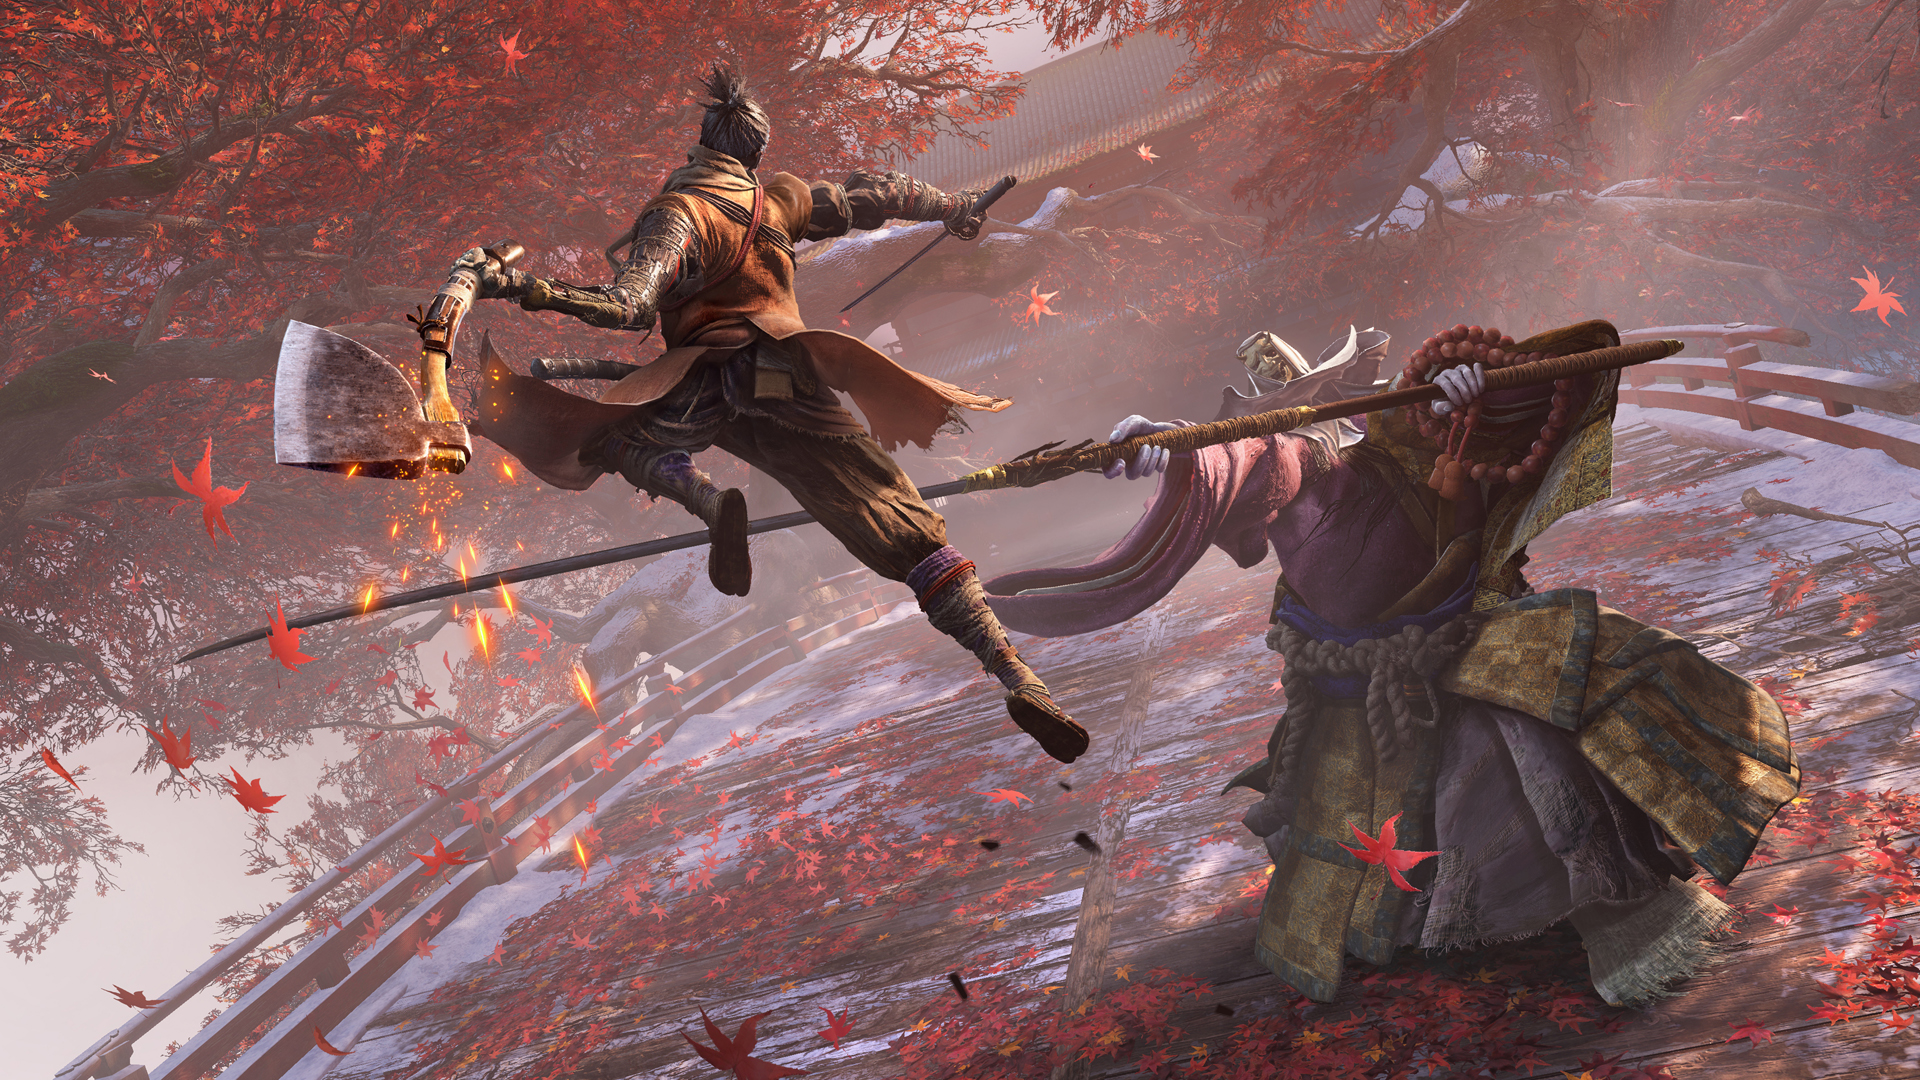 Sekiro's new update is aimed at making players experiment more